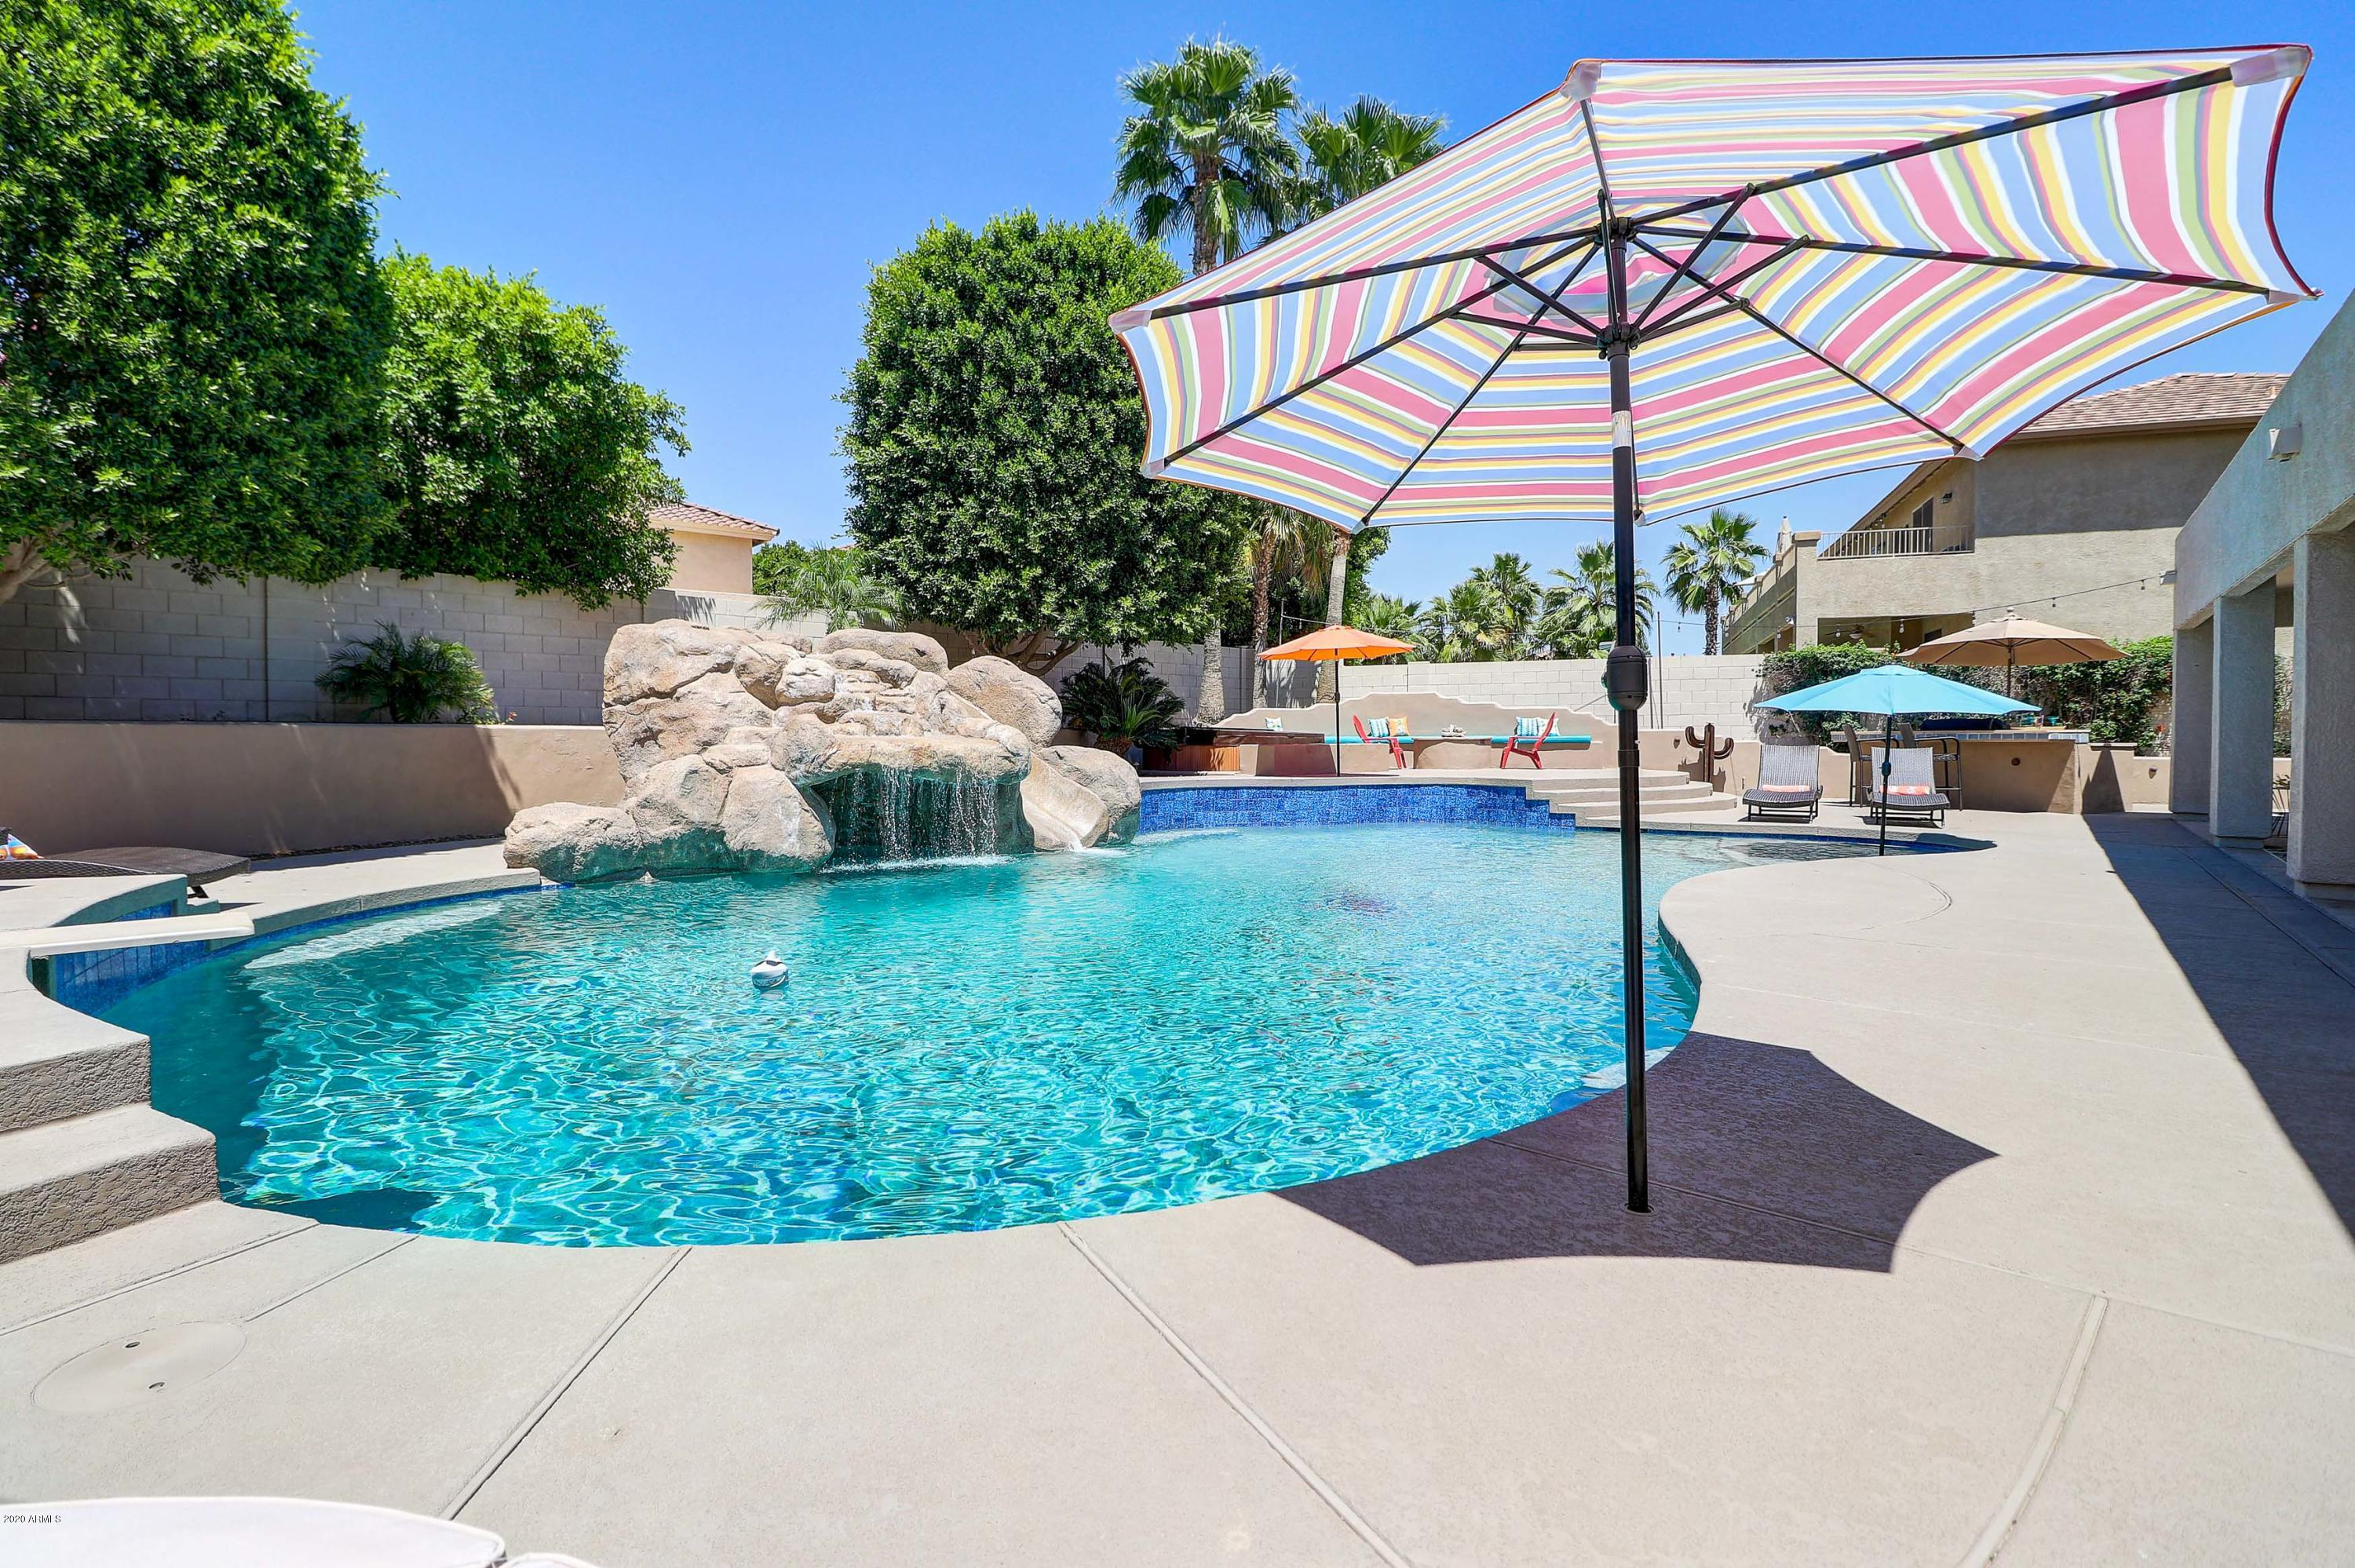 13412 W ANNIKA Drive, Litchfield Park, AZ 85340, 5 Bedrooms Bedrooms, ,Residential Lease,For Rent,13412 W ANNIKA Drive,6229356